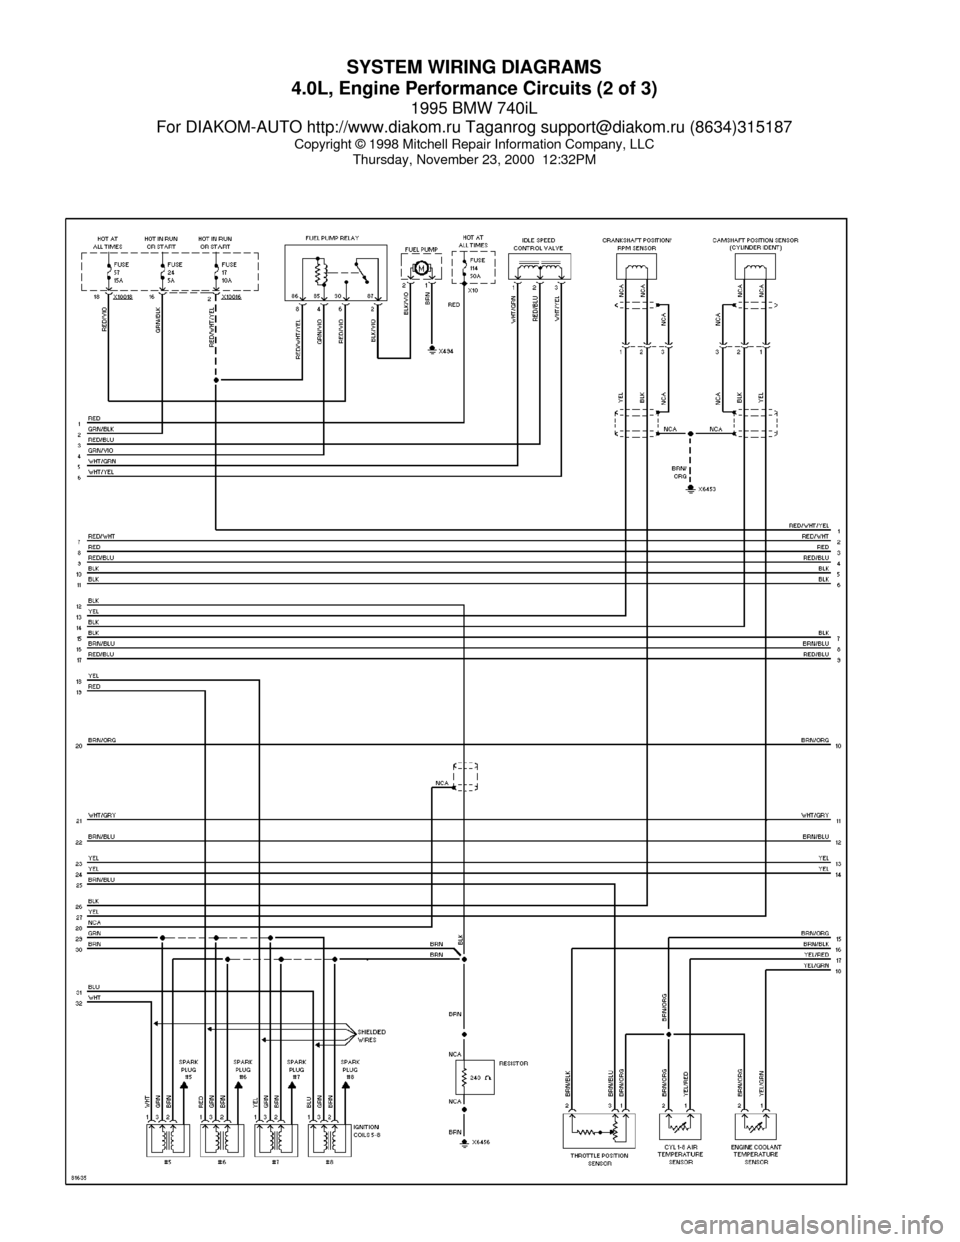 bmw 740il 1995 e38 system wiring diagrams wire diagram 06 bmw 330i